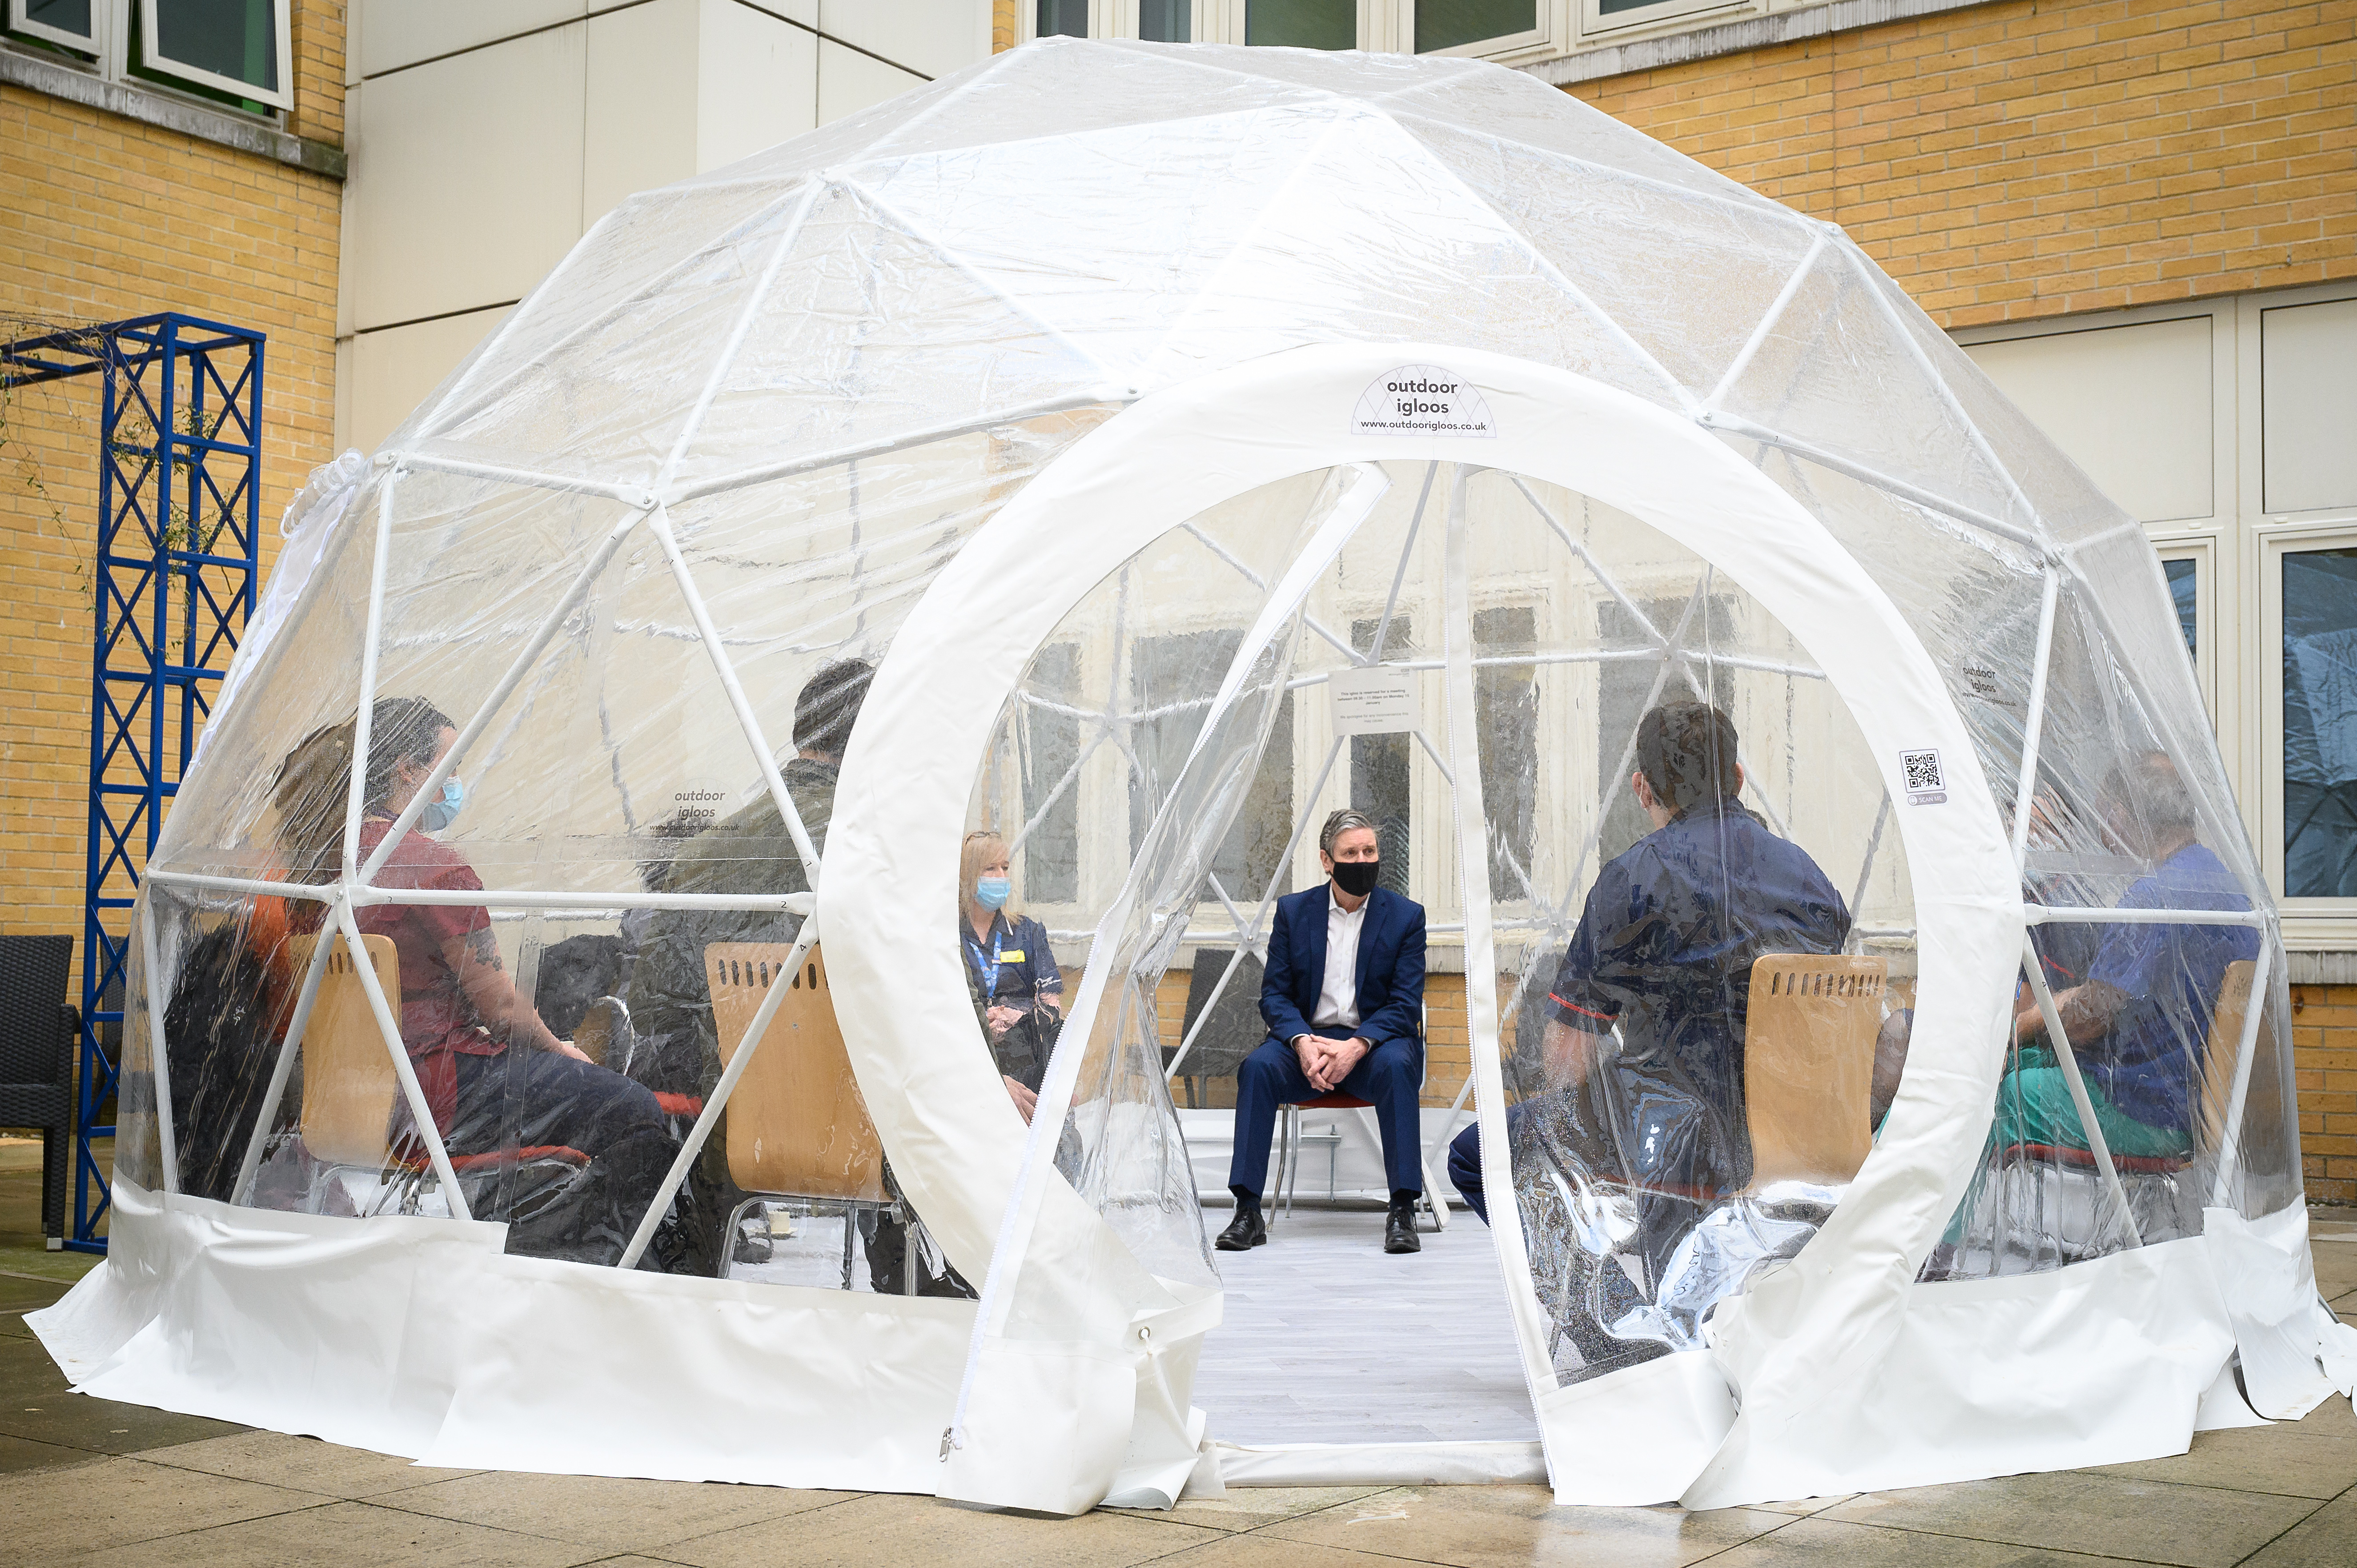 <p>LONDON, ENGLAND - MARCH 15: Labour Party leader Keir Starmer speaks with nurses and midwives inside a pop-up dome during a visit to the Whittington hospital on March 15, 2021 in London, England. The Labour Party has proposed a pay increase of at least 2.1%, following the Governments decision to offer a capped 1% pay rise to NHS workers, which critics have stated is an real terms pay cut when interest rates are considered. (Photo by Leon Neal/Getty Images)</p>